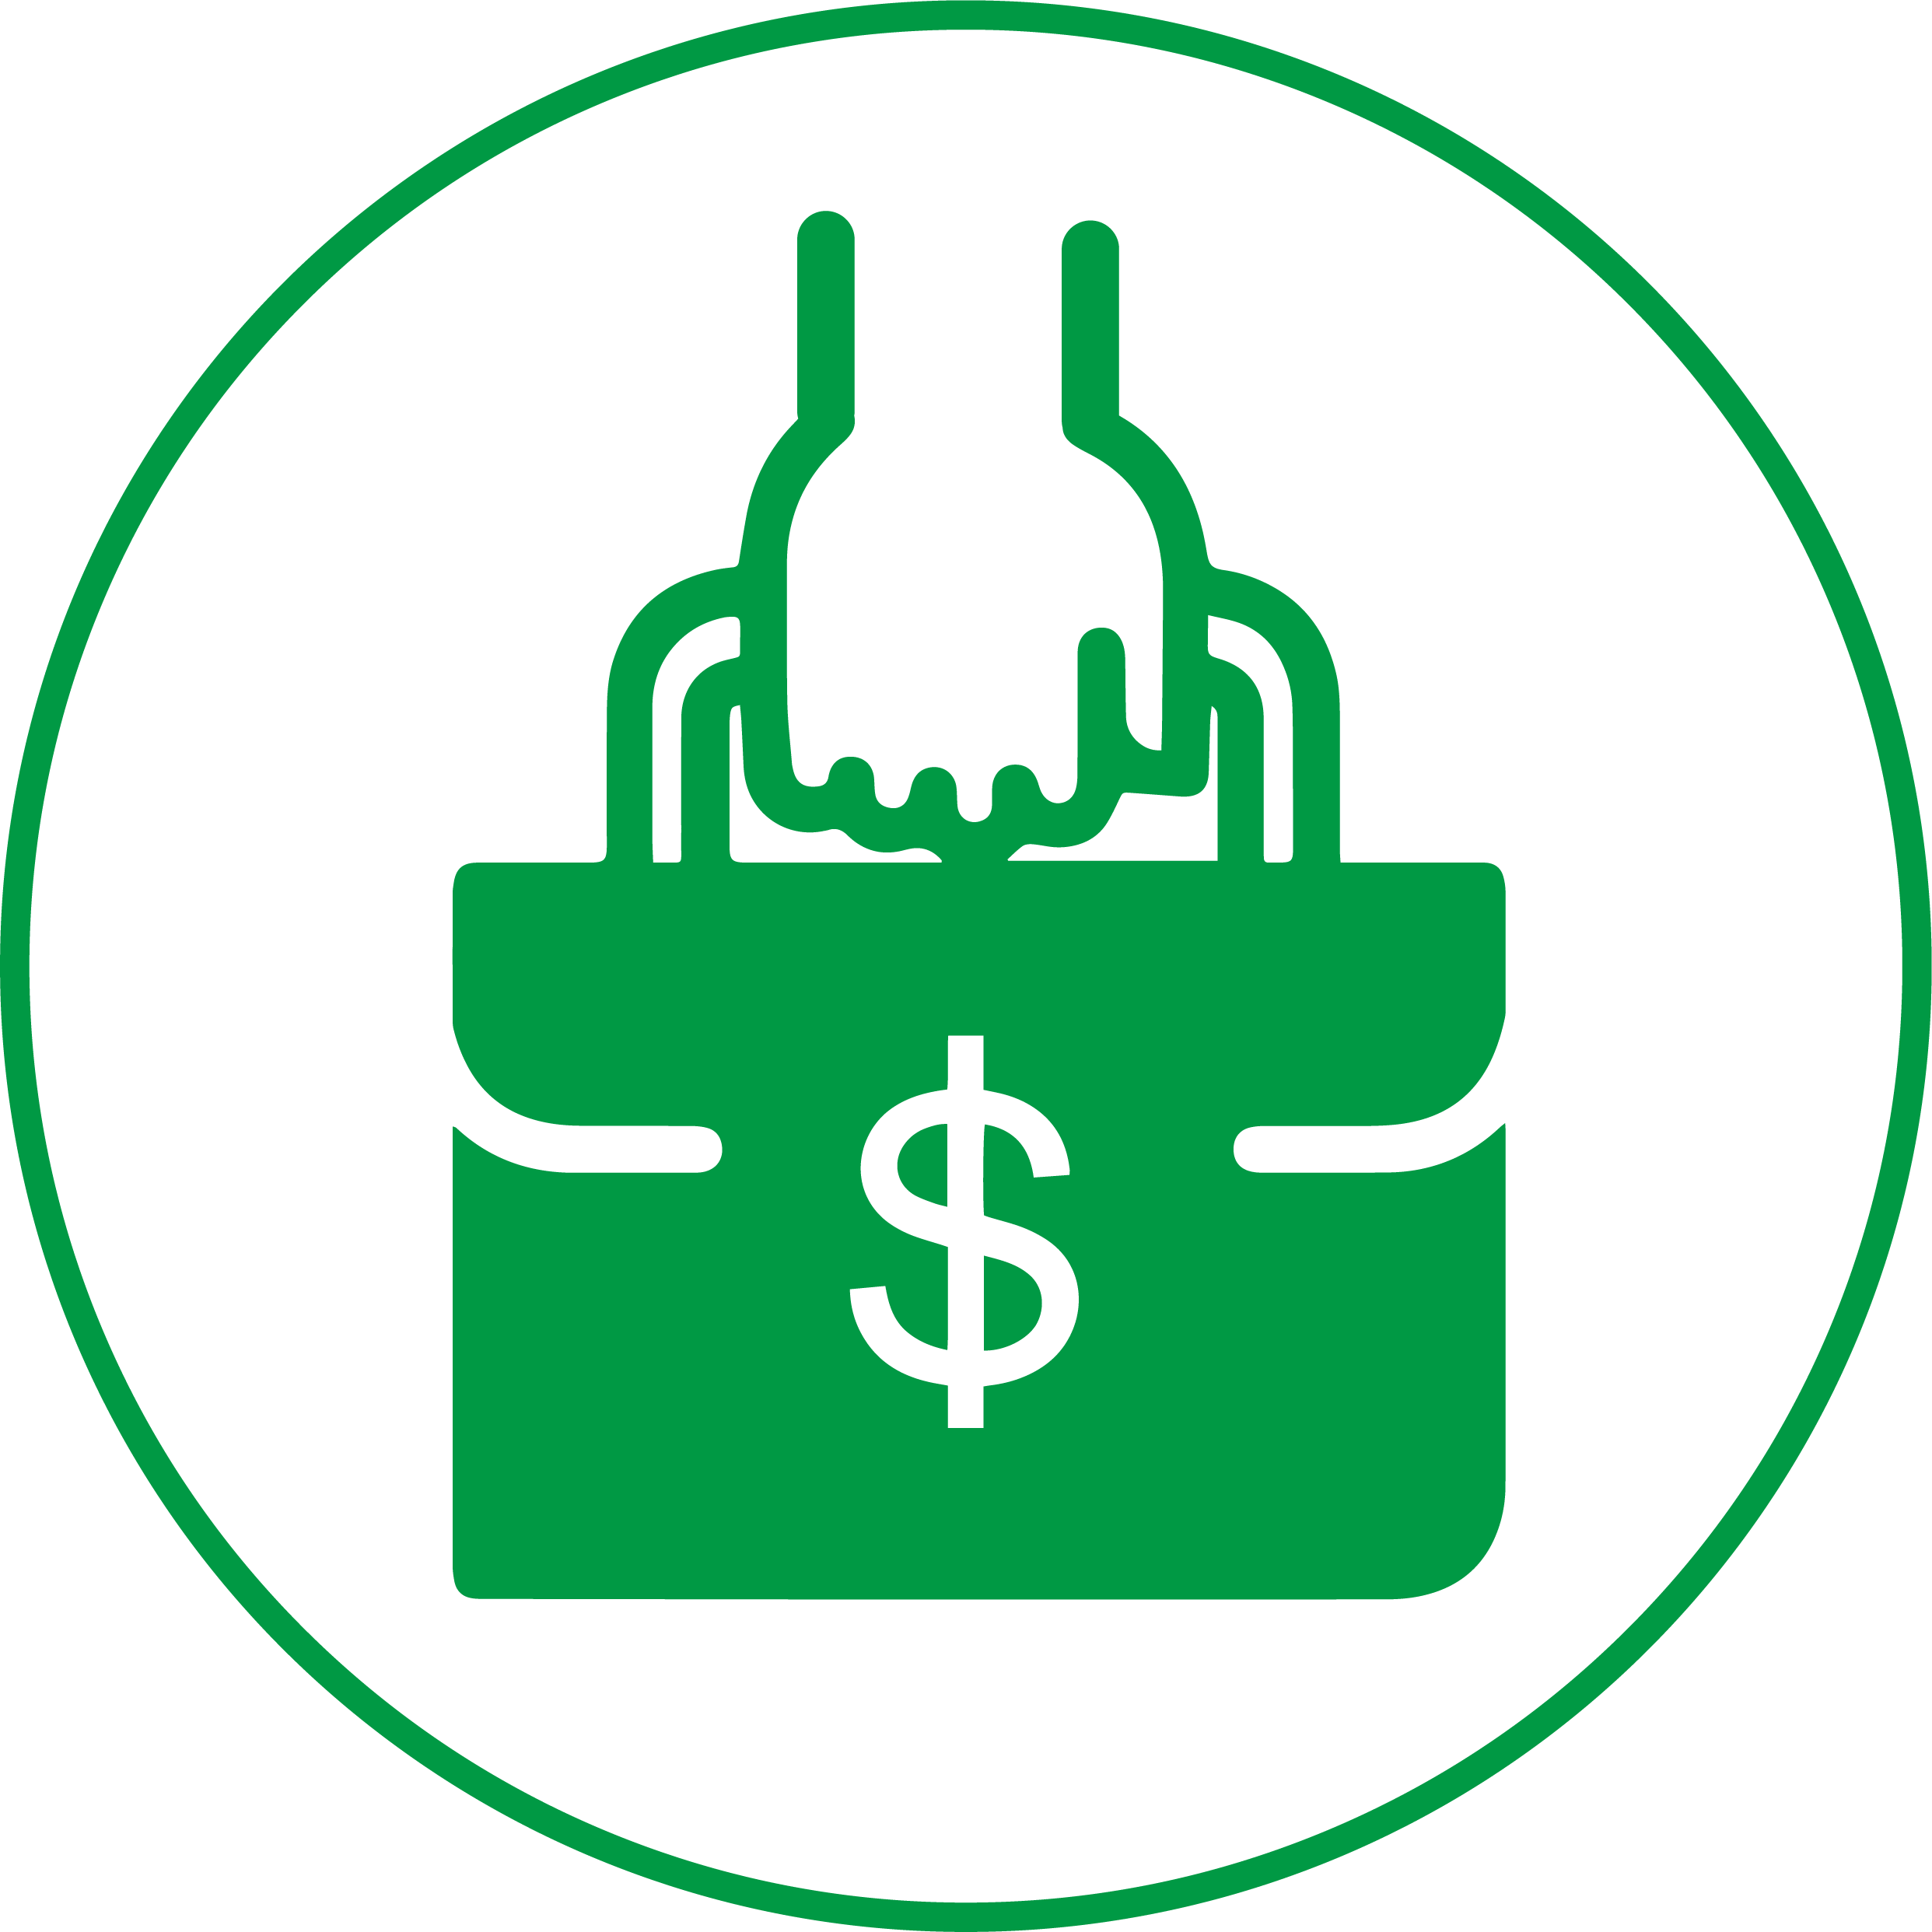 Pension Portability Icon